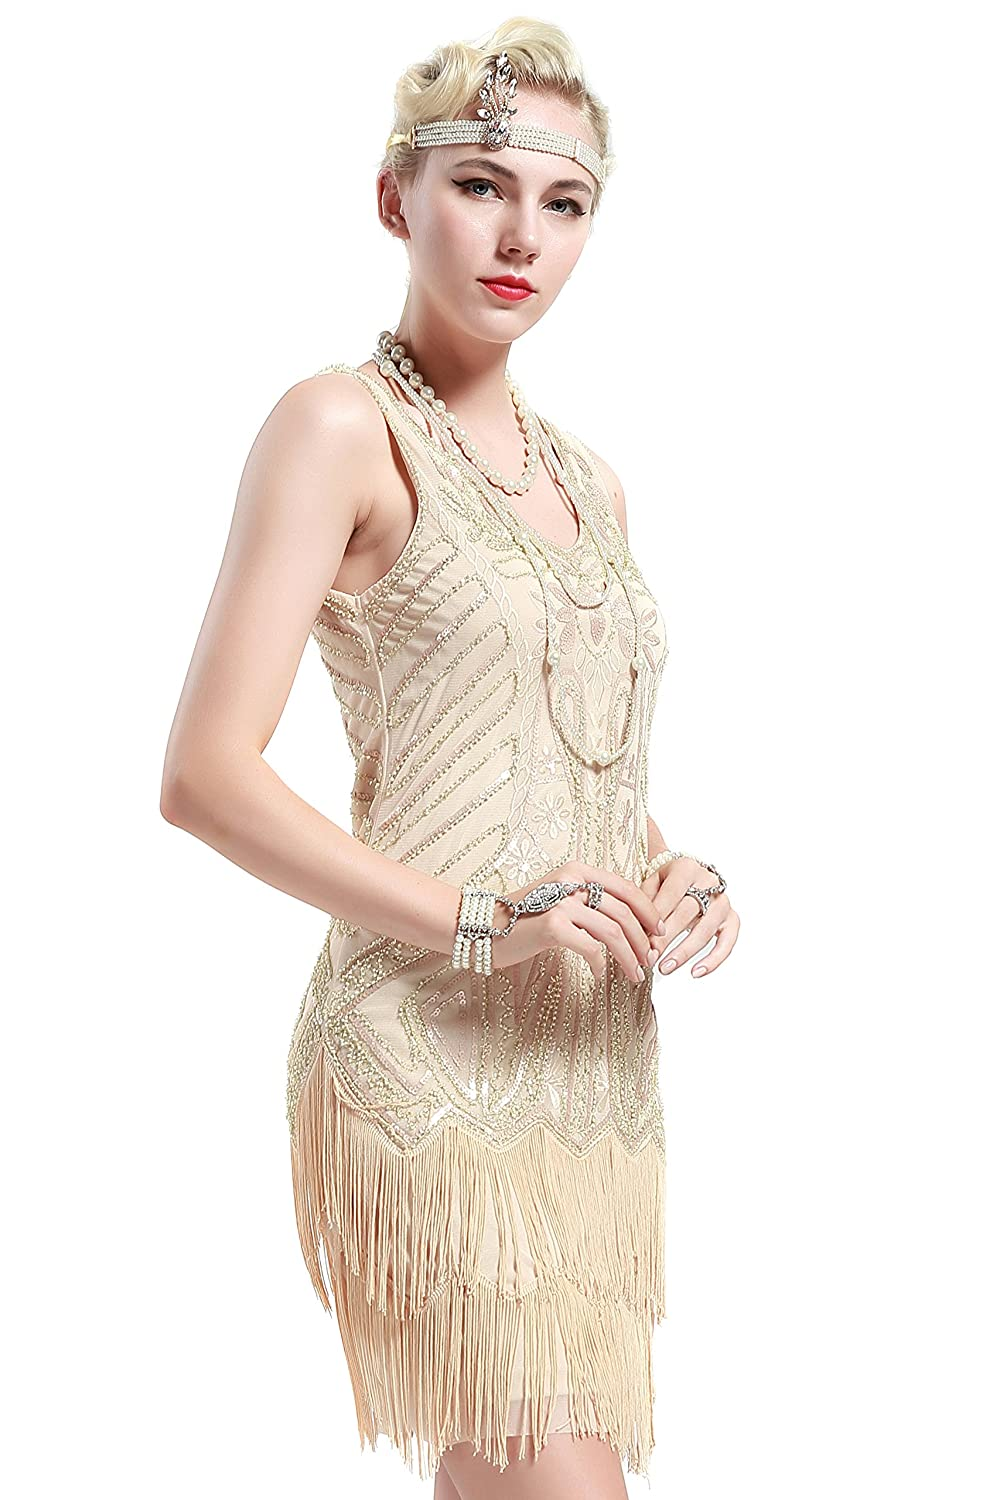 1920s Costumes: Flapper, Great Gatsby, Gangster Girl Flapper Dresses 1920s V Neck Beaded Fringed Great Gatsby Dress $28.99 AT vintagedancer.com